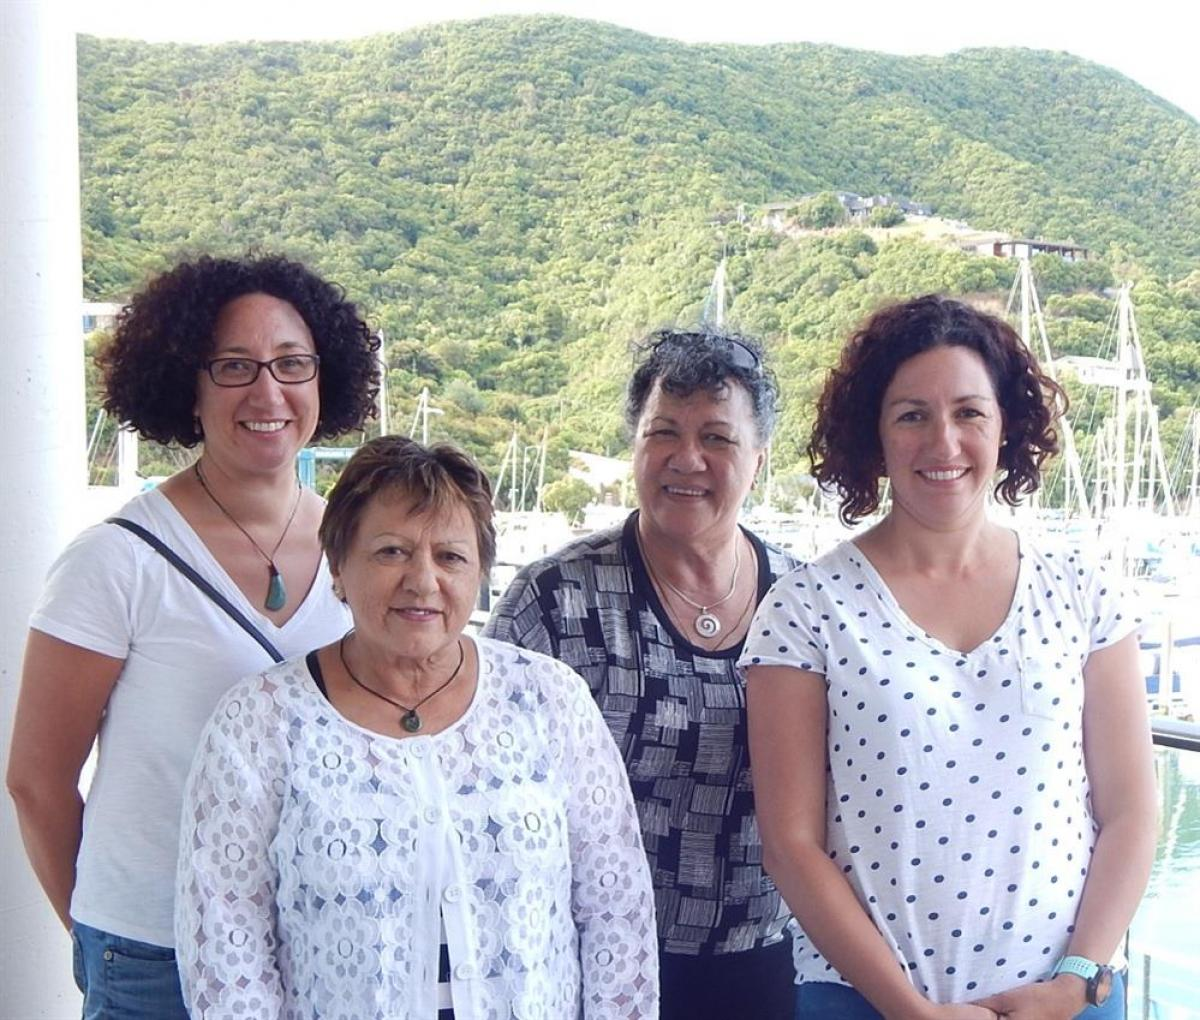 Te Ātiawa Trust Office  - Nau mai ki Whaea Cherie Torepe, from Auckland, & Whaea Sylvia Marina, from Perth, and her daughters, Cherie Glare, from Cairns, and Julianne Lund from Perth